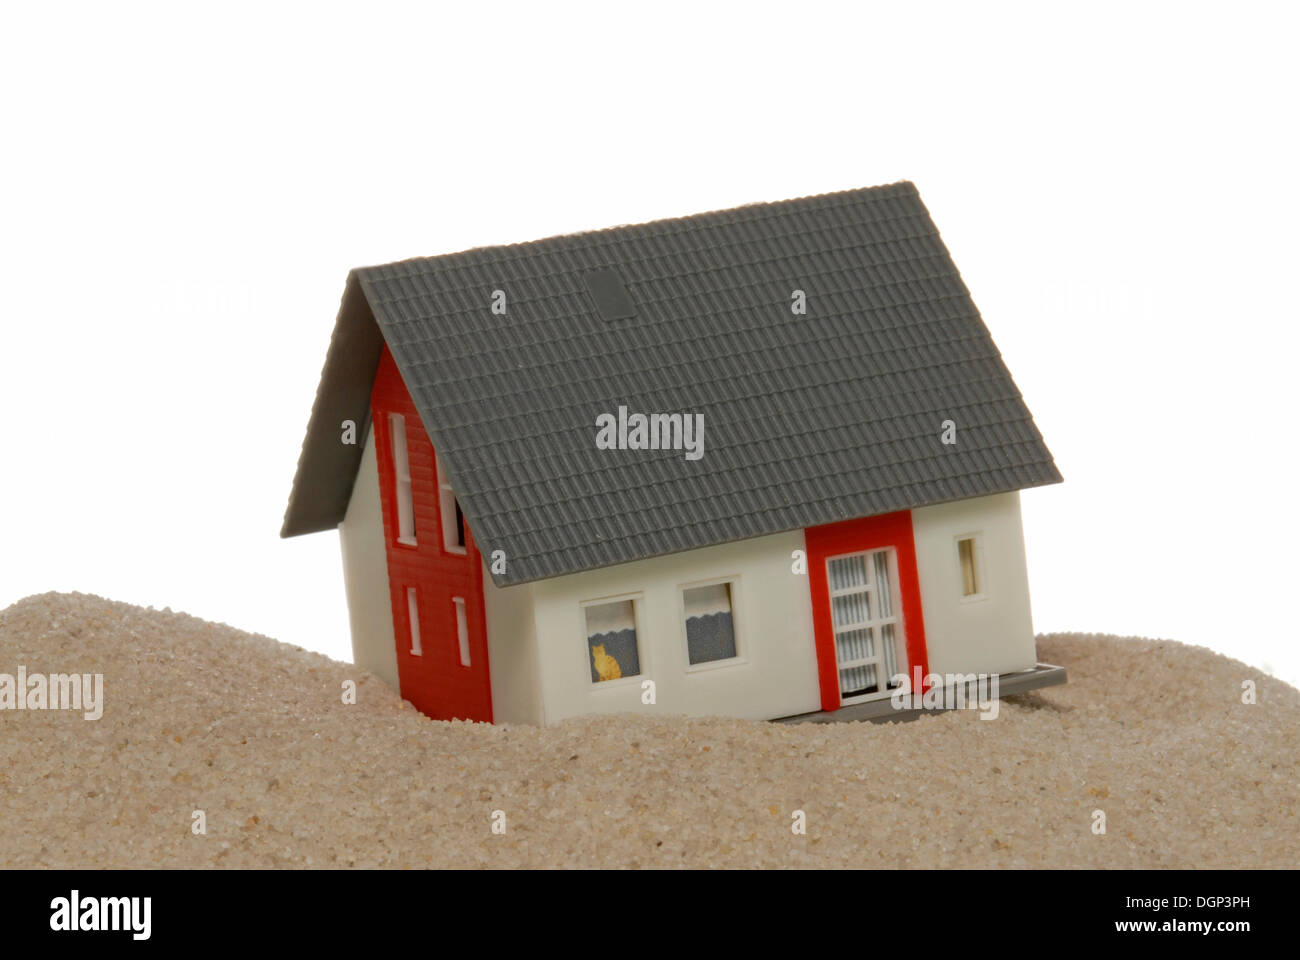 Miniature house built on sand - Stock Image